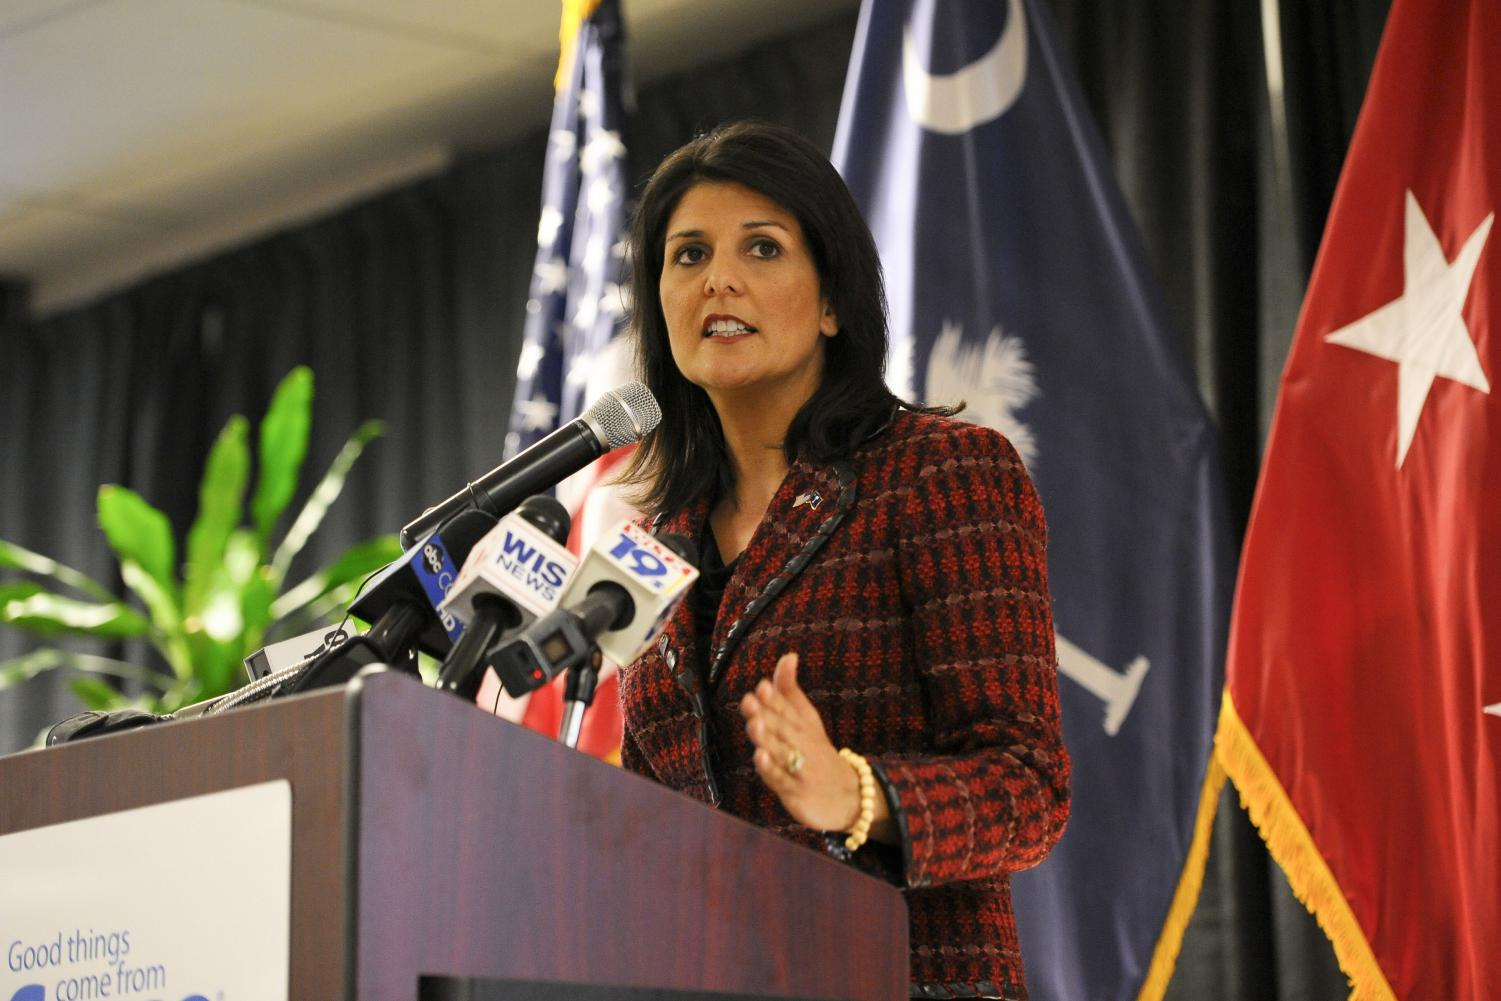 Nikki Haley (above) speaking at a conference. She is set to step down from her position as the United States Ambassador to the United Nations at the end of this year.